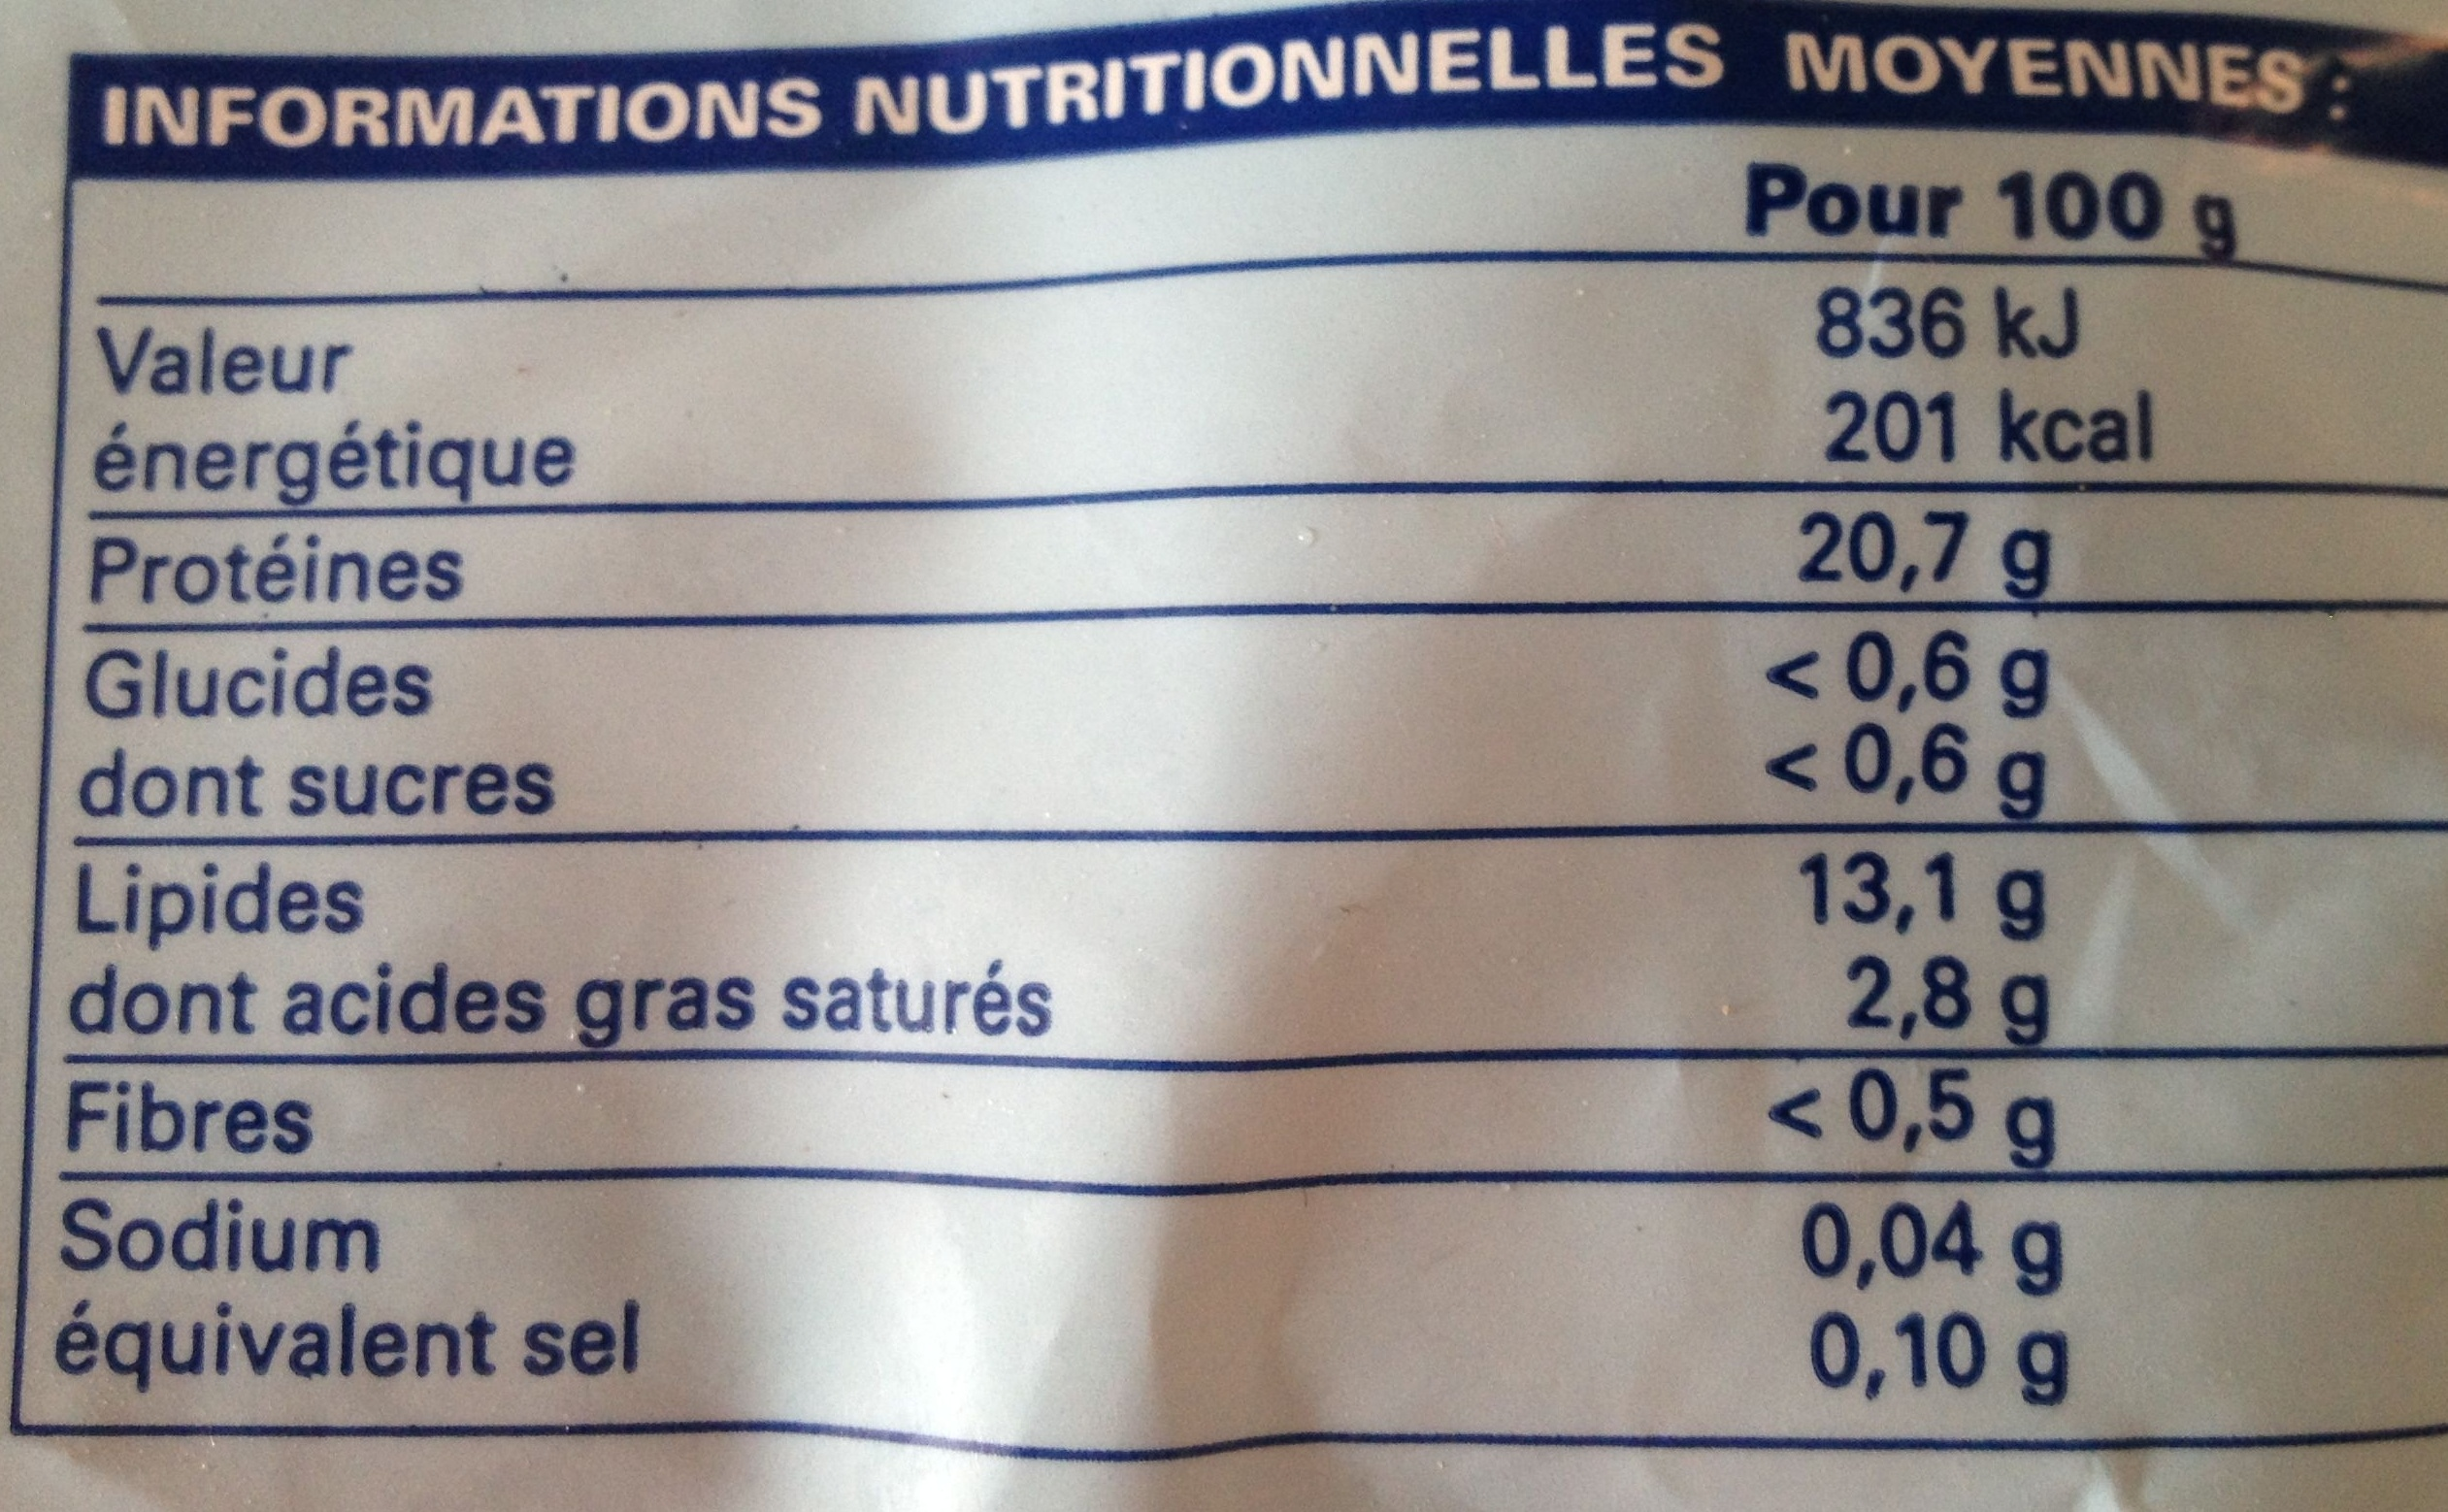 4 portions de filets de saumon atlantique surgelé - Informations nutritionnelles